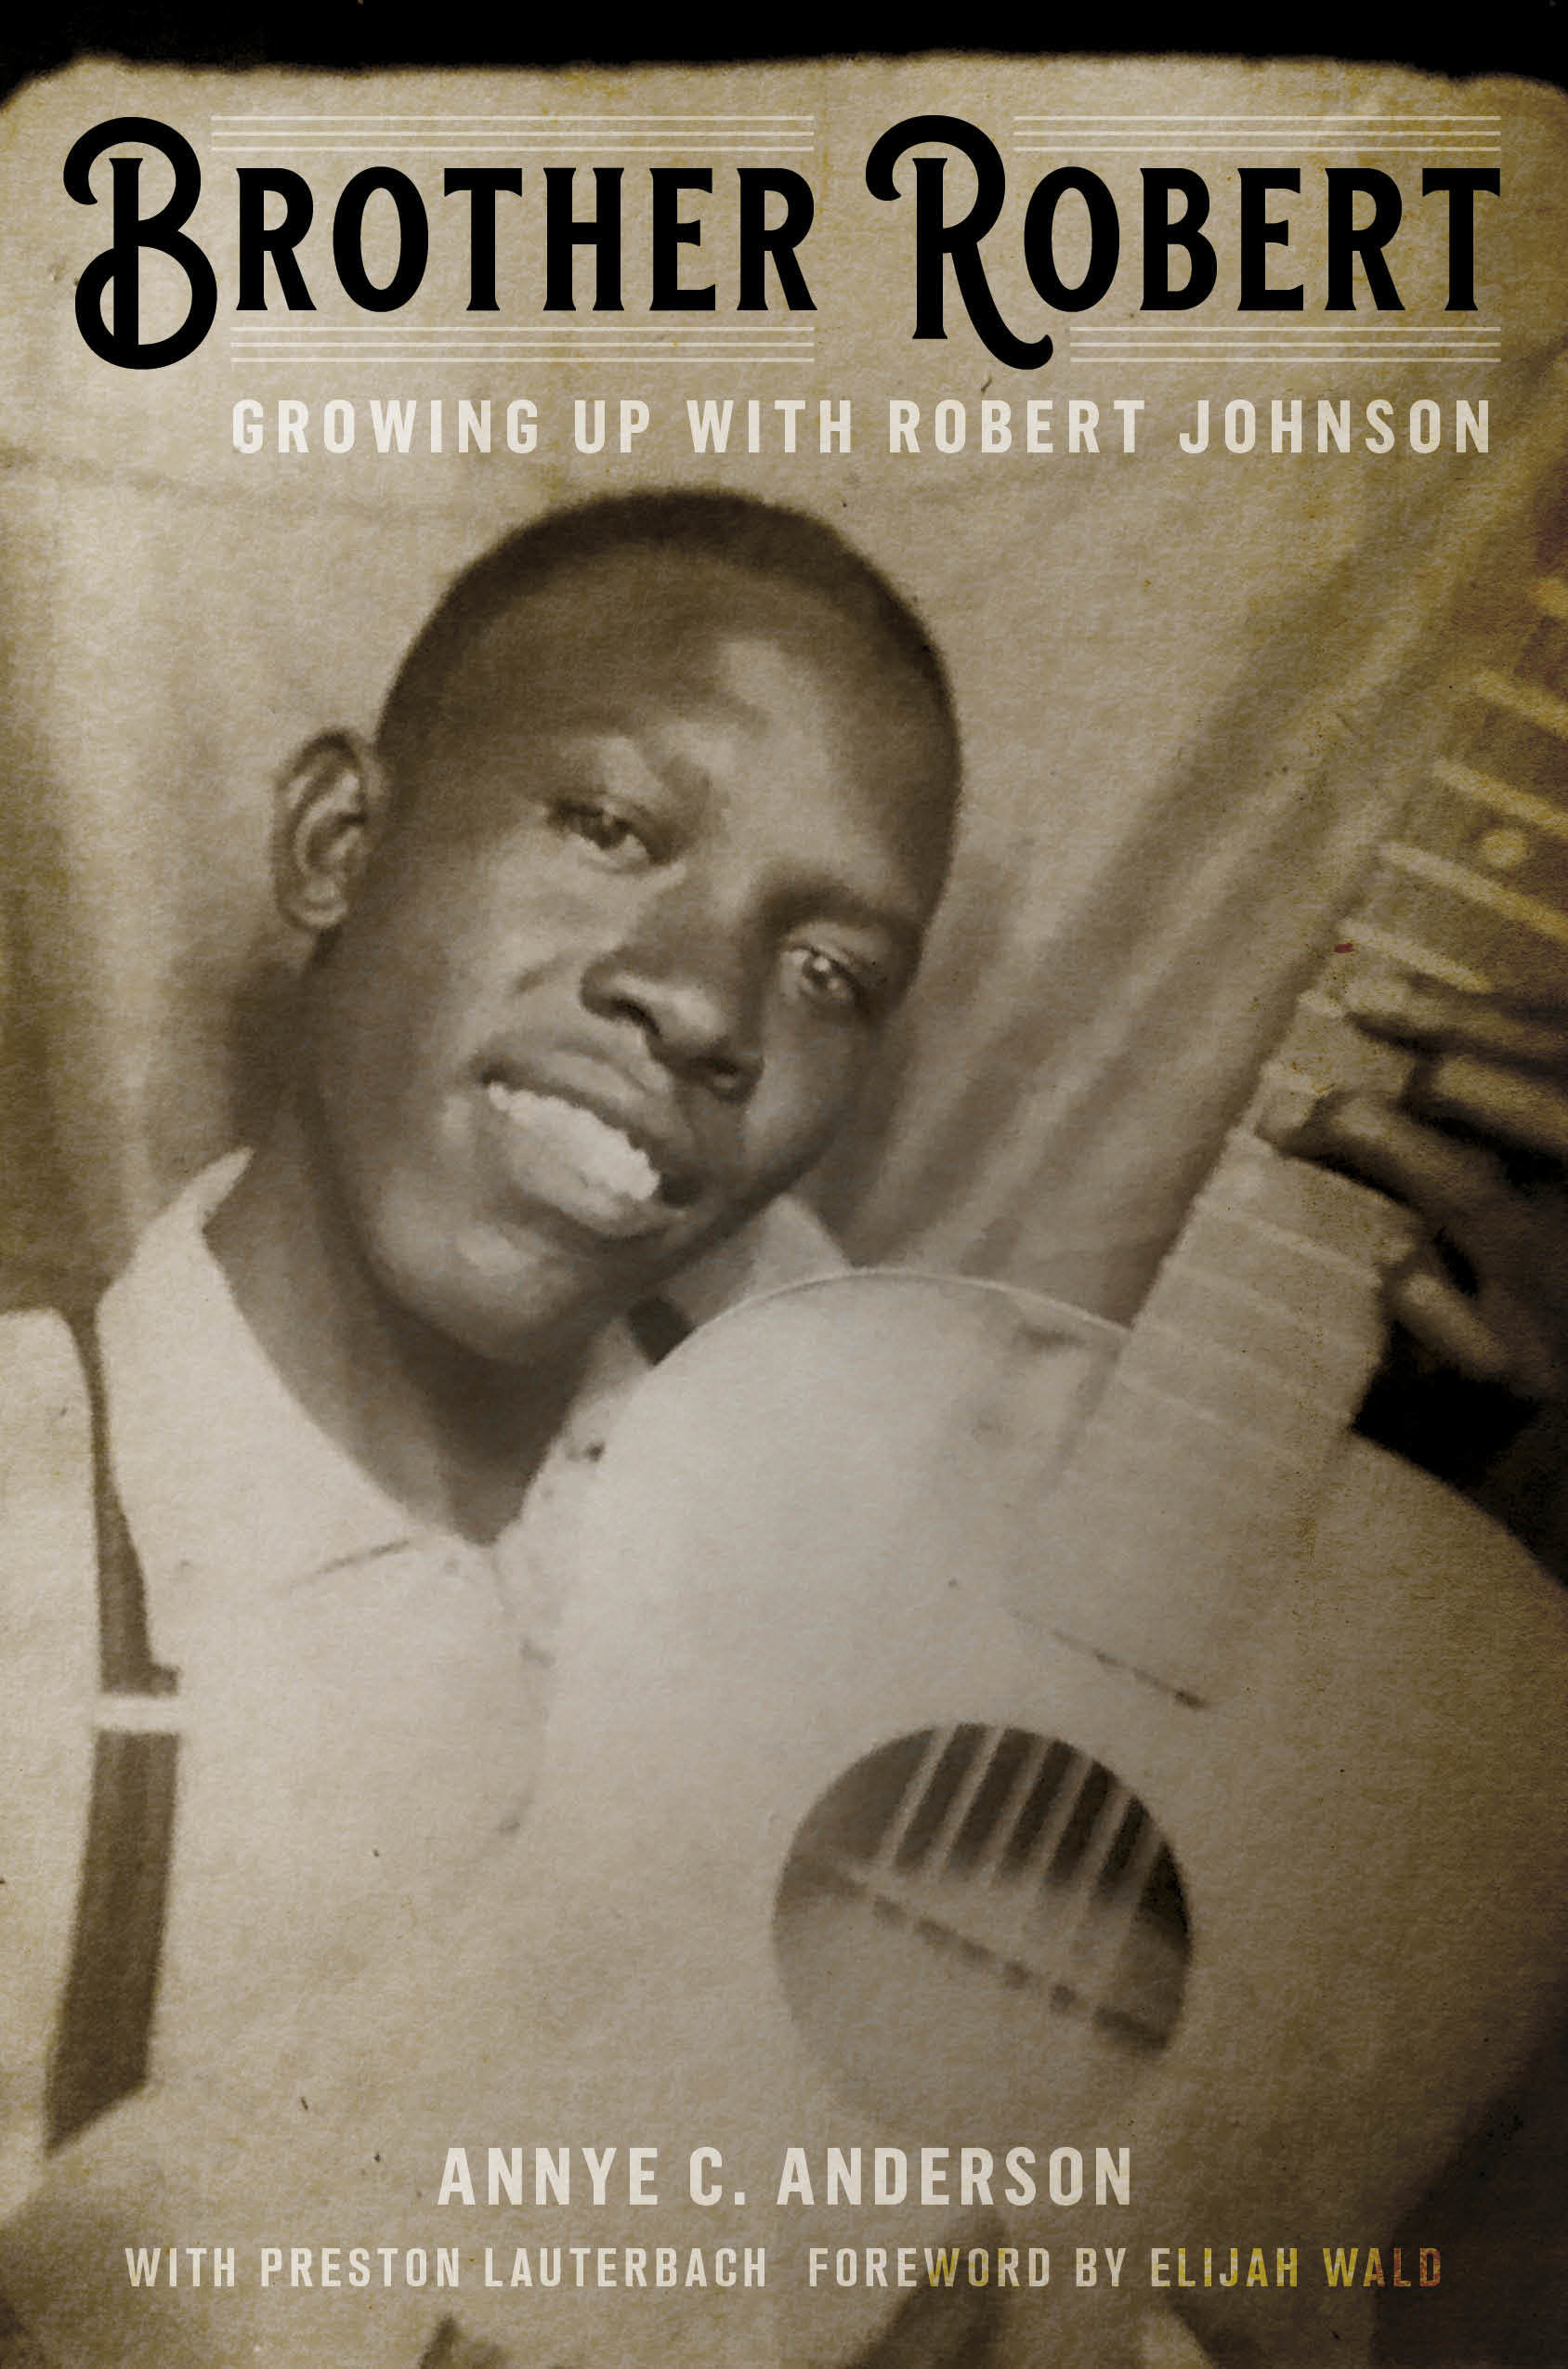 A smiling photo of Robert Johnson